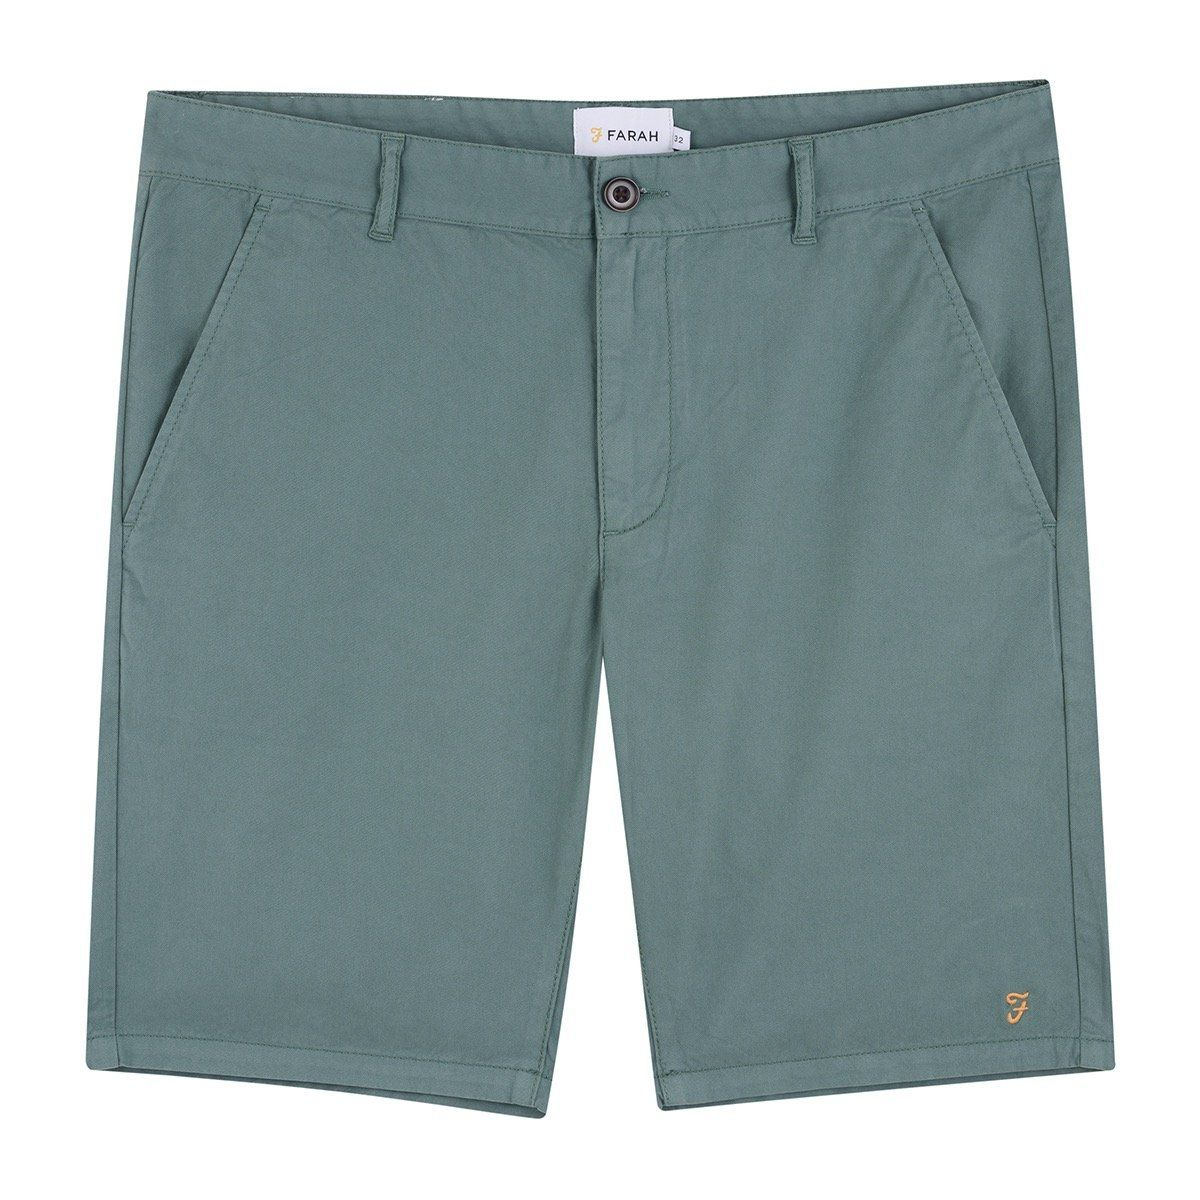 Farah Hawk Dyed Twill Chino Shorts - Green Biscuit 34'